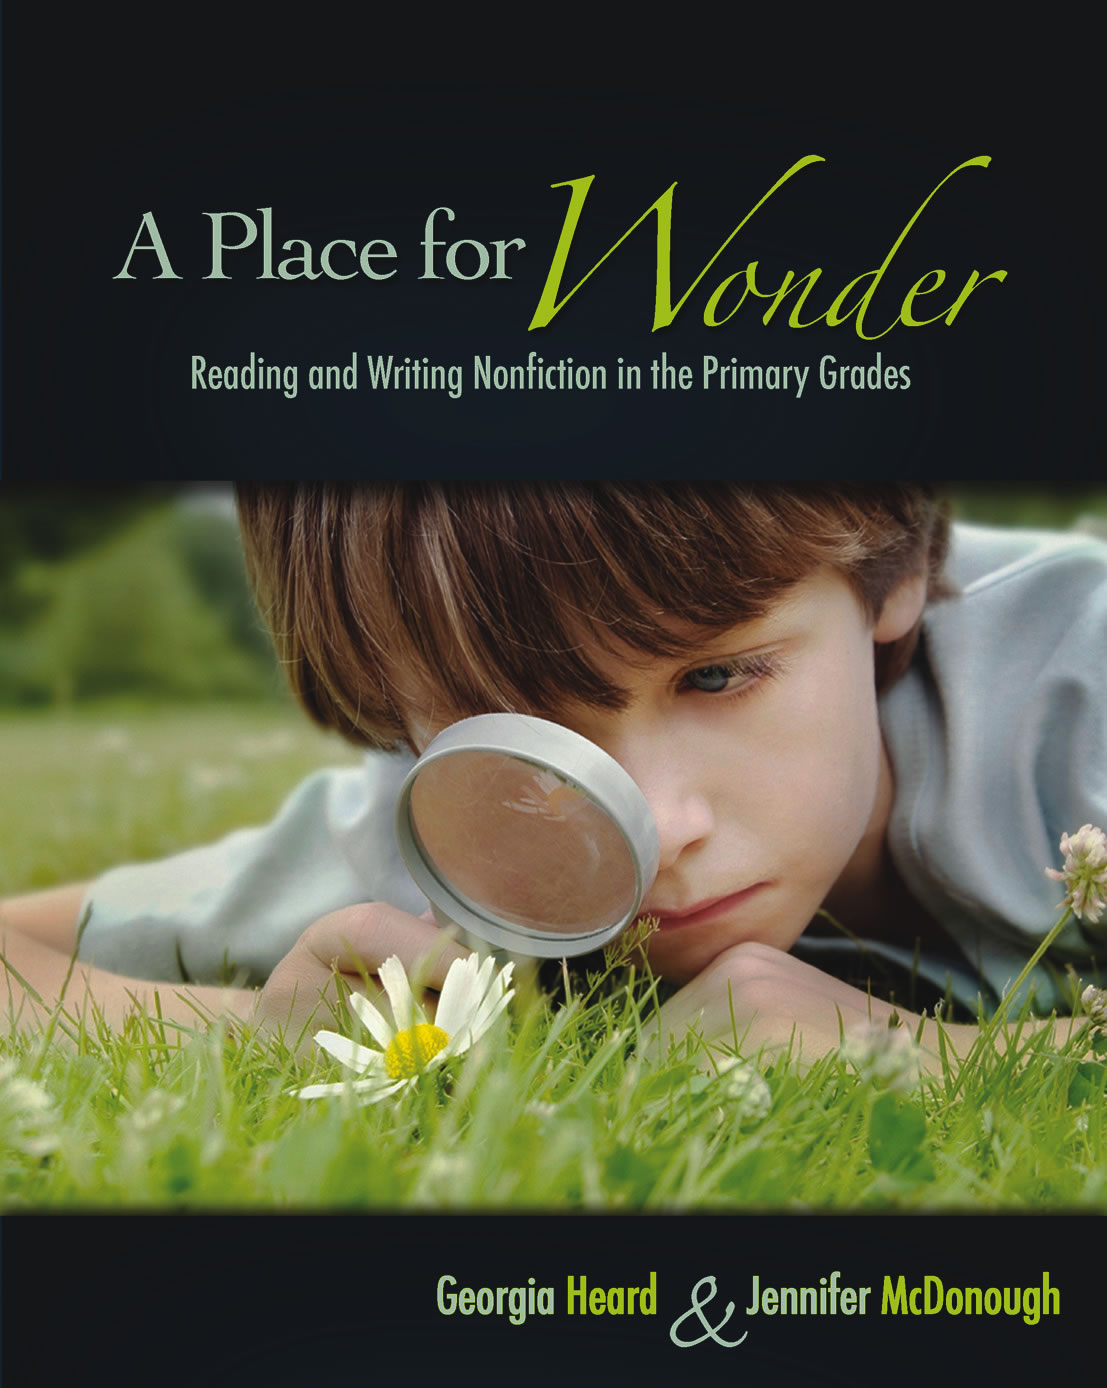 A Place for Wonder | Stenhouse Publishers